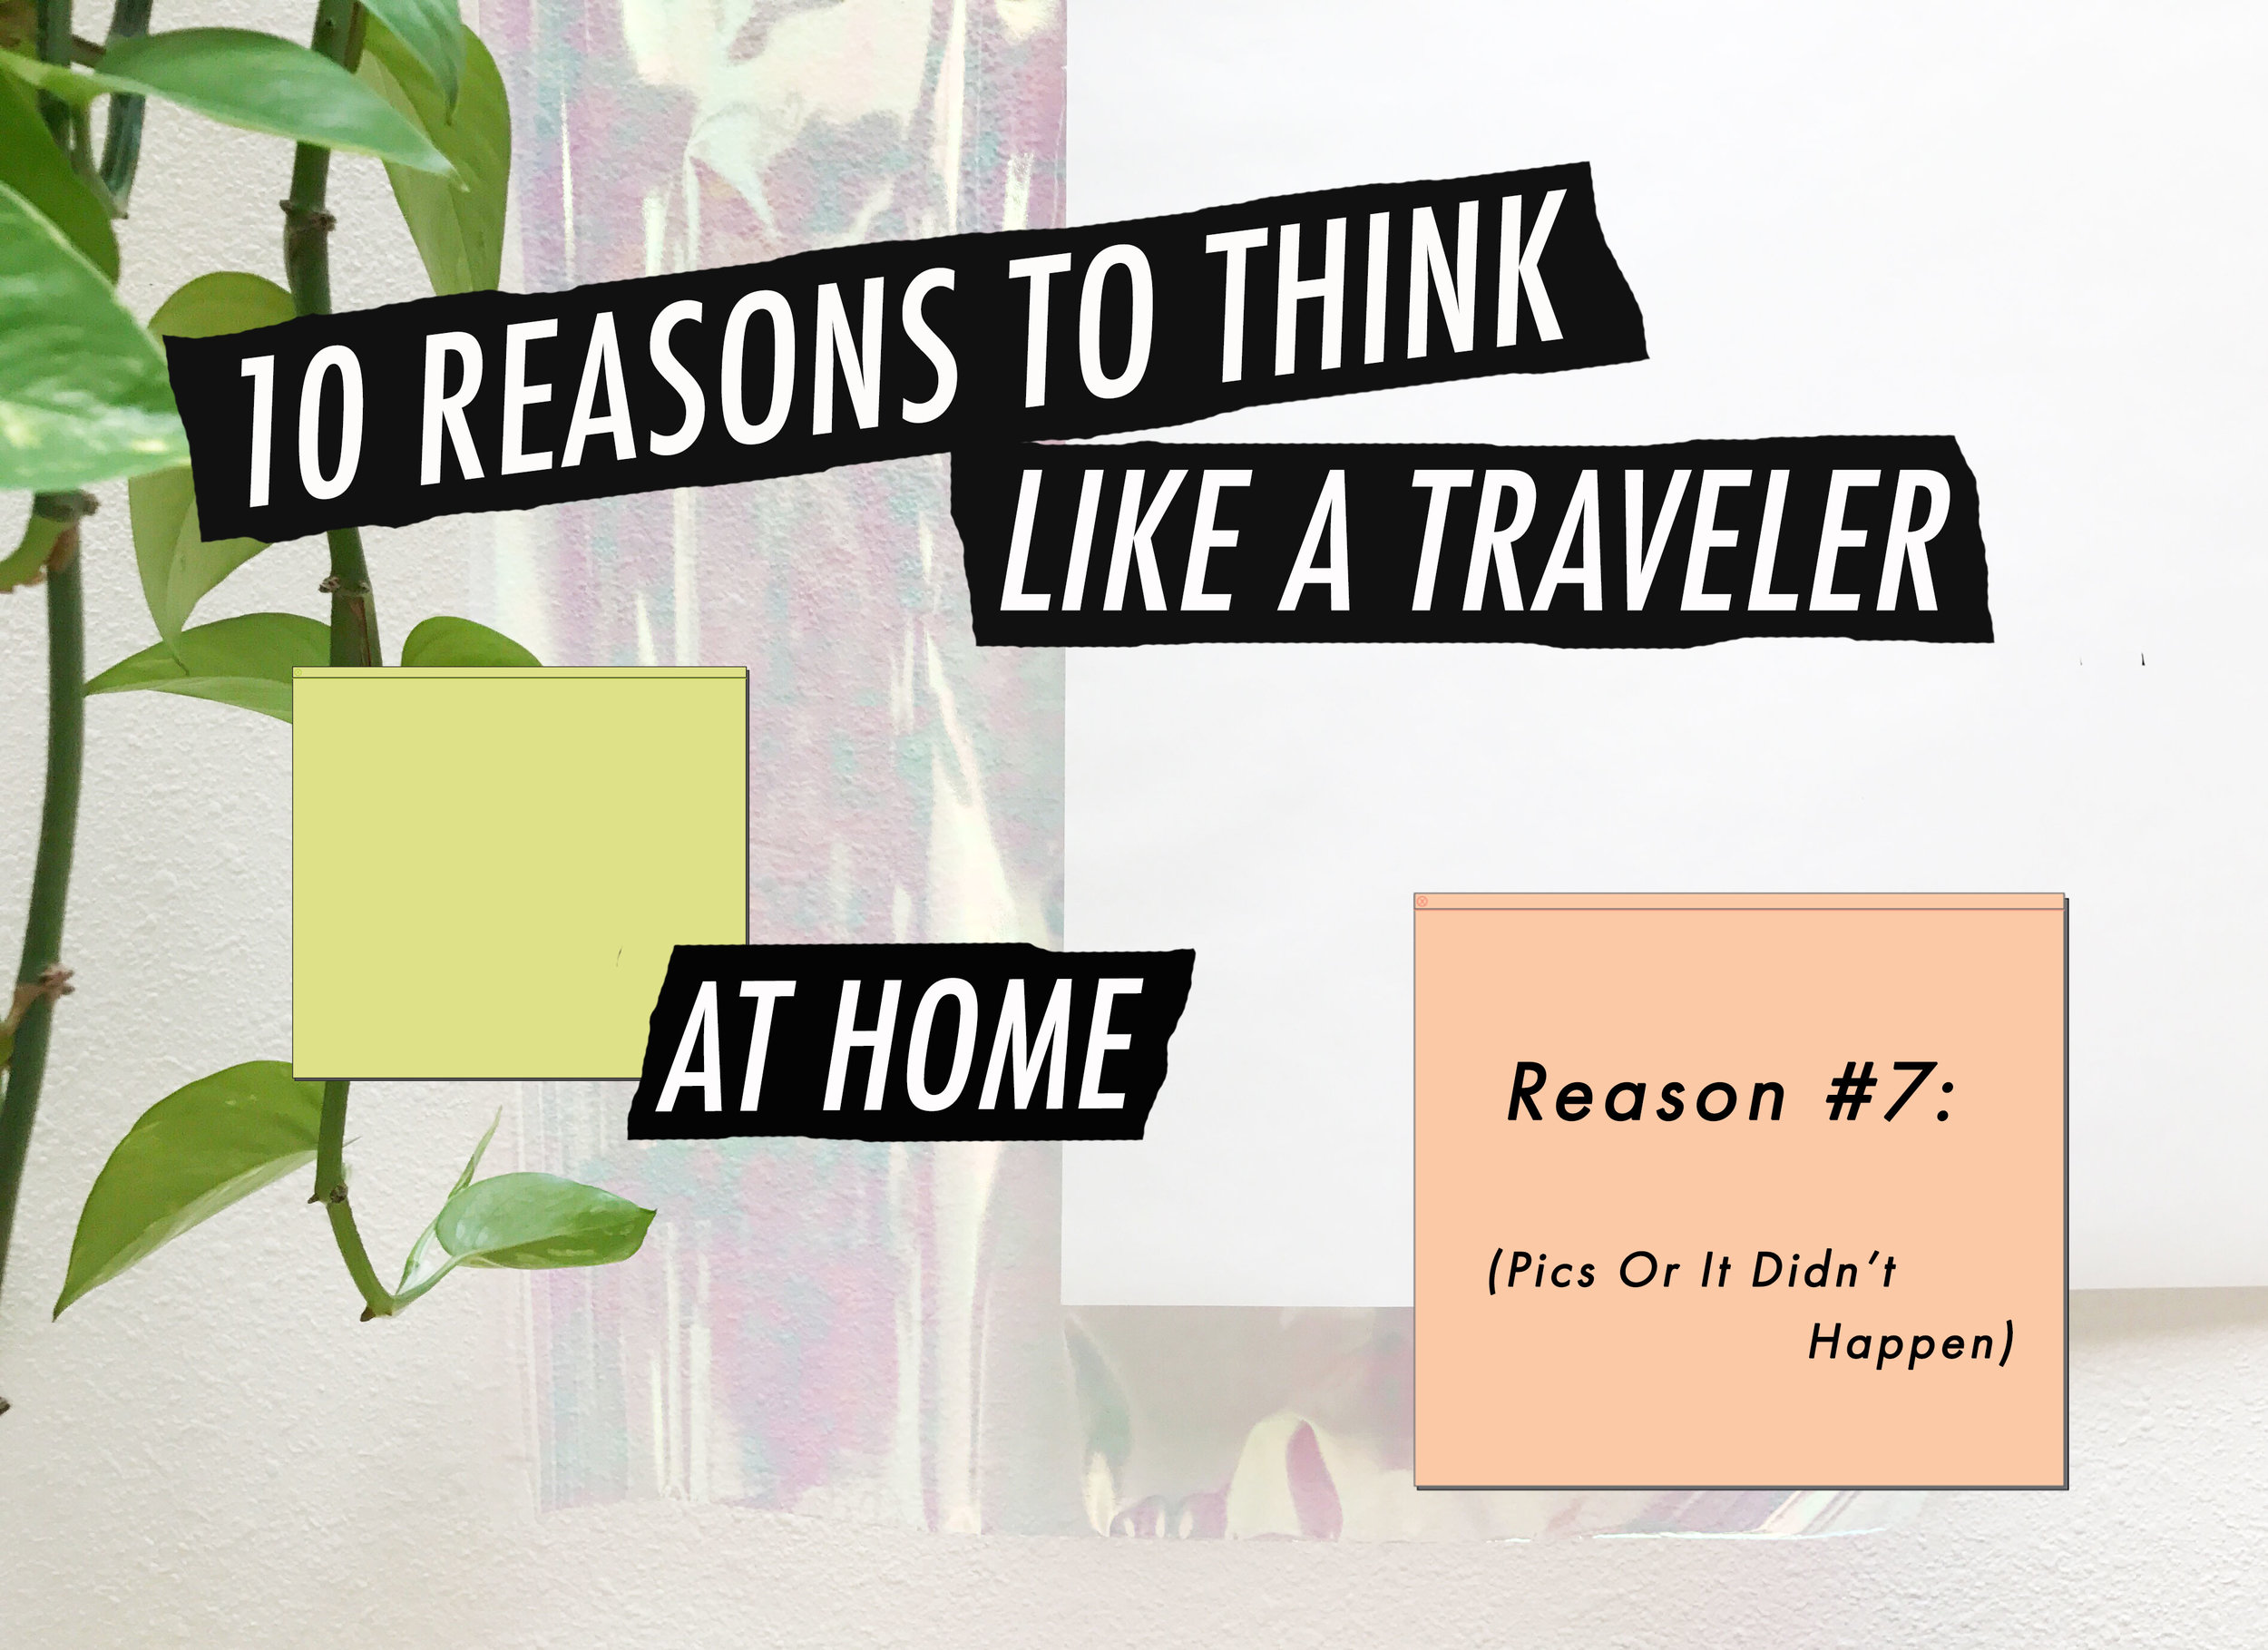 10 Reasons_Reason 7_Local(Tourist)